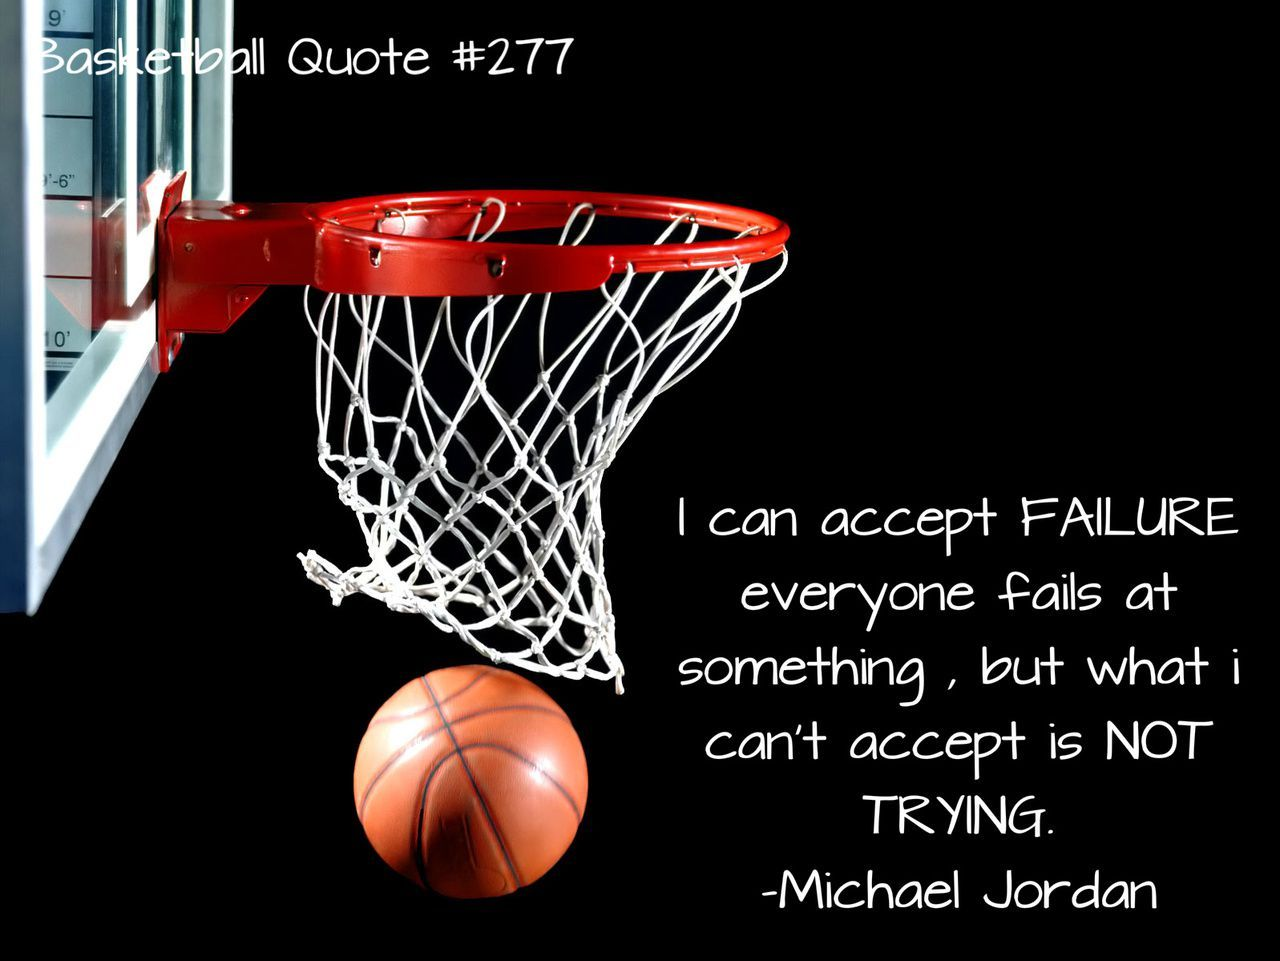 Pin By Manvir Sportsguru On Sports Quotes Basketball Wallpaper Basketball Wallpapers Hd Basketball Iphone Wallpaper